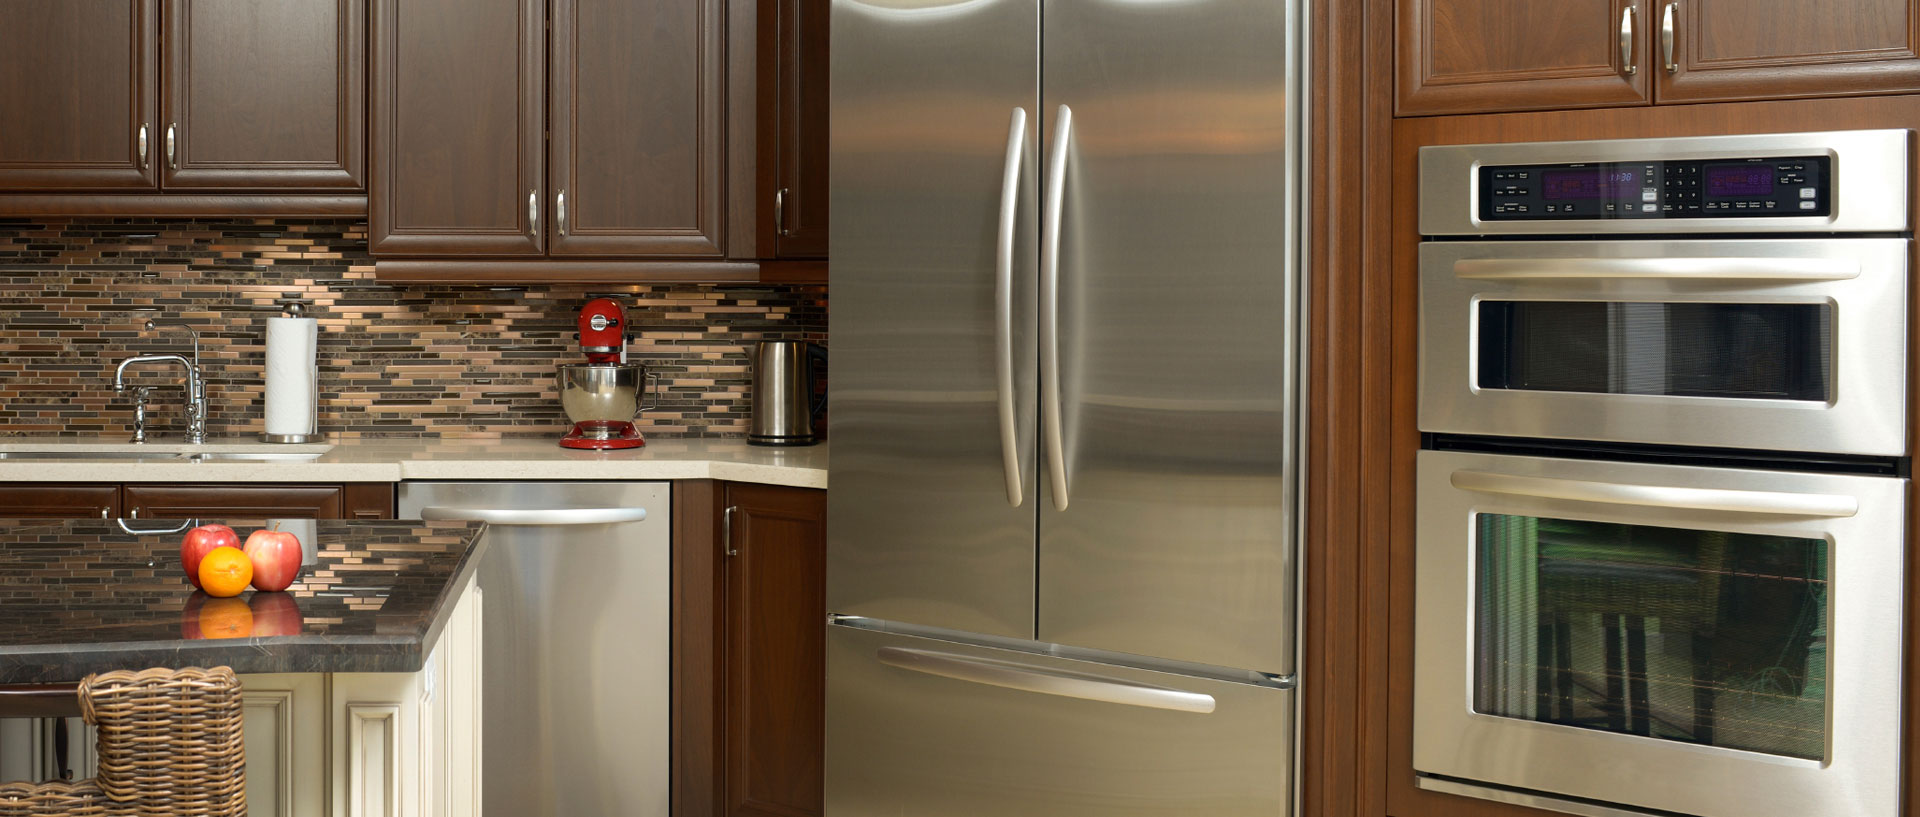 The best french door refrigerators consumer reports rubansaba